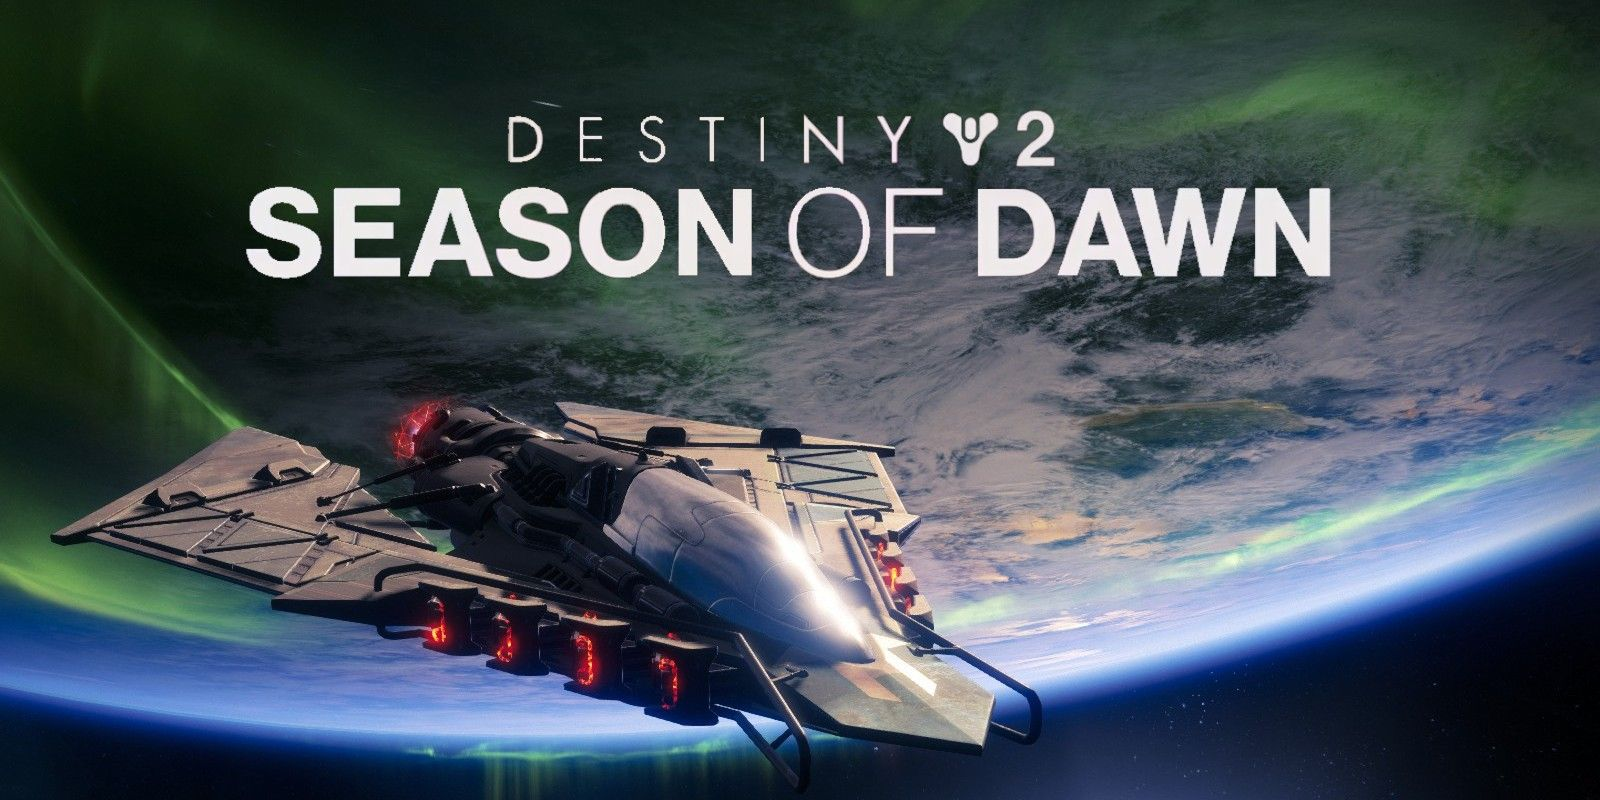 Destiny 2 Guide: How to Get The Ritual Weapons for Season of